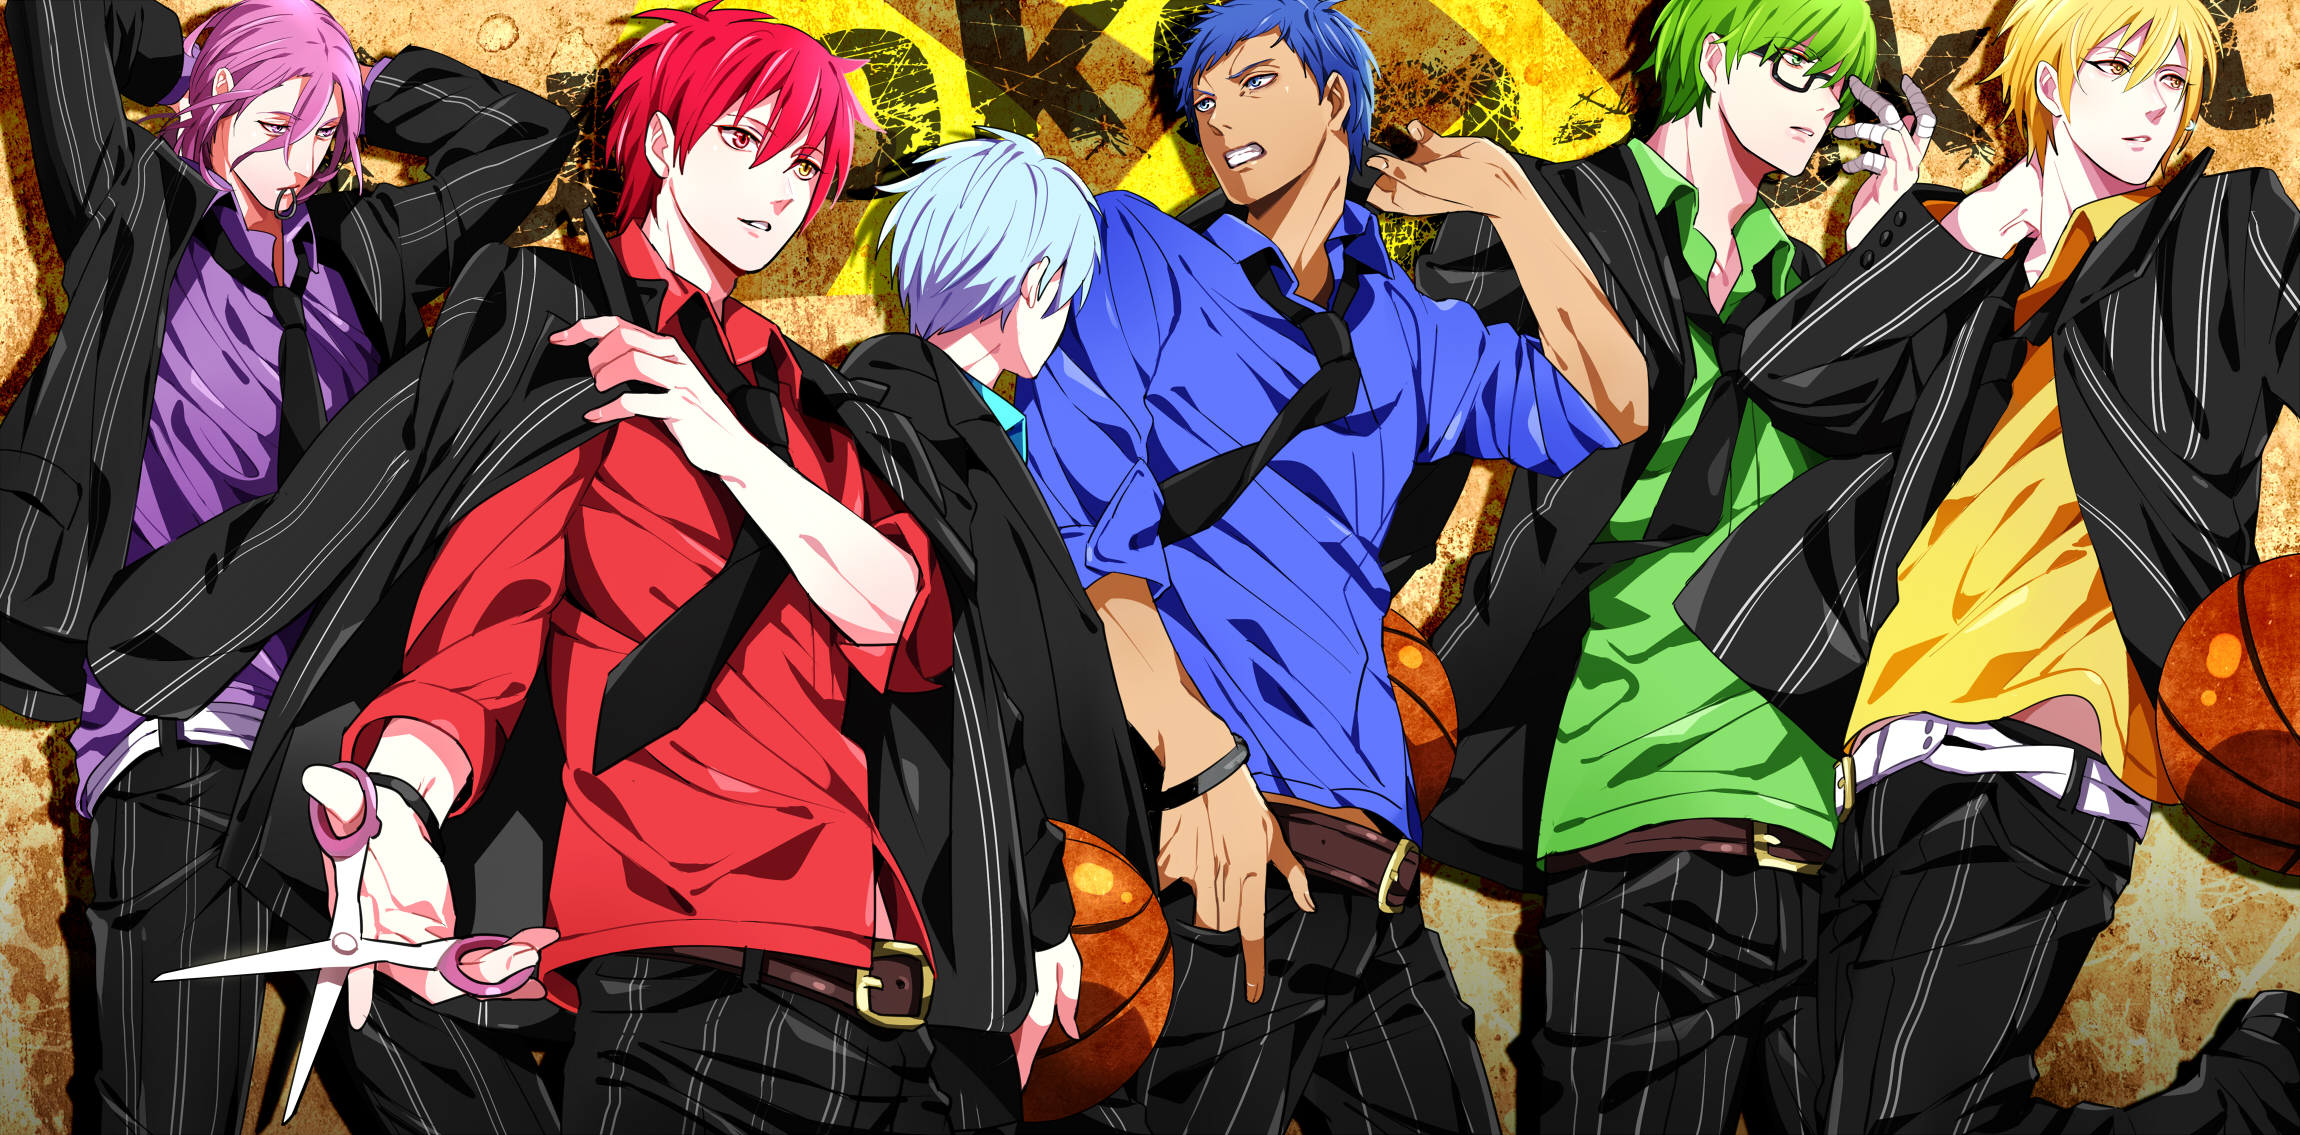 Generation of Miracles - Kuroko no Basuke Photo (34147937) - Fanpop